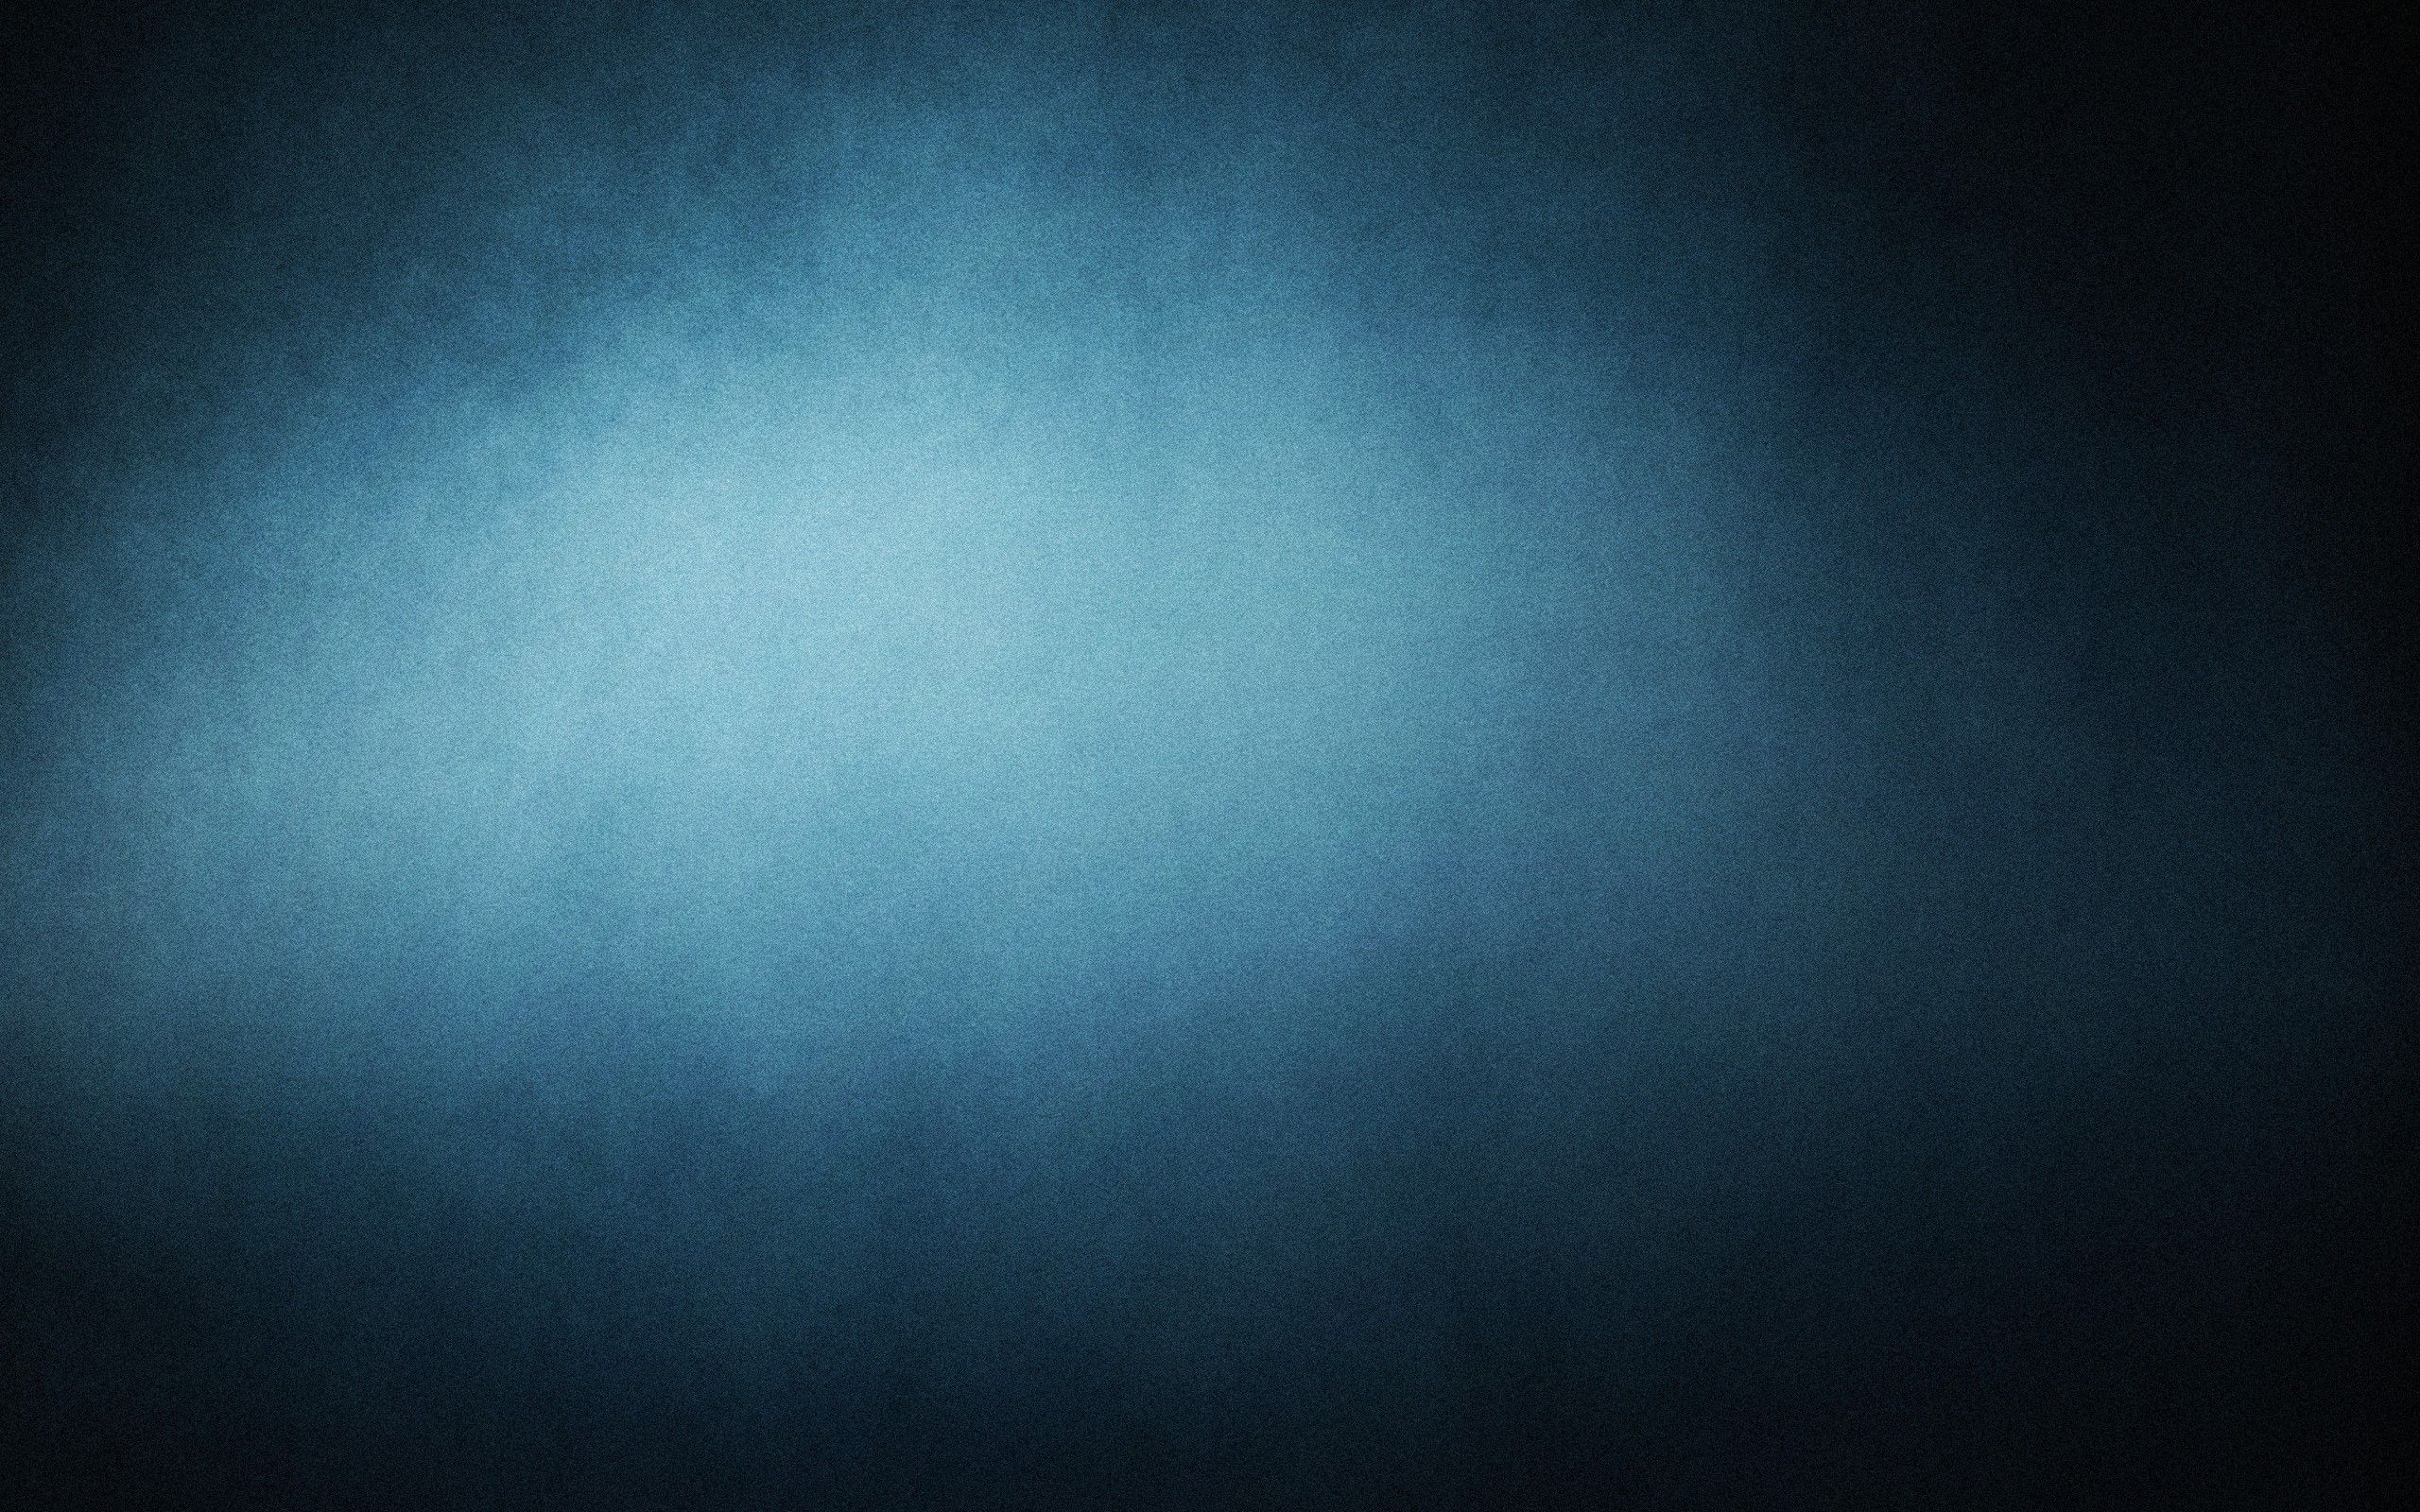 Blue Background Dark Simple Background Gradient